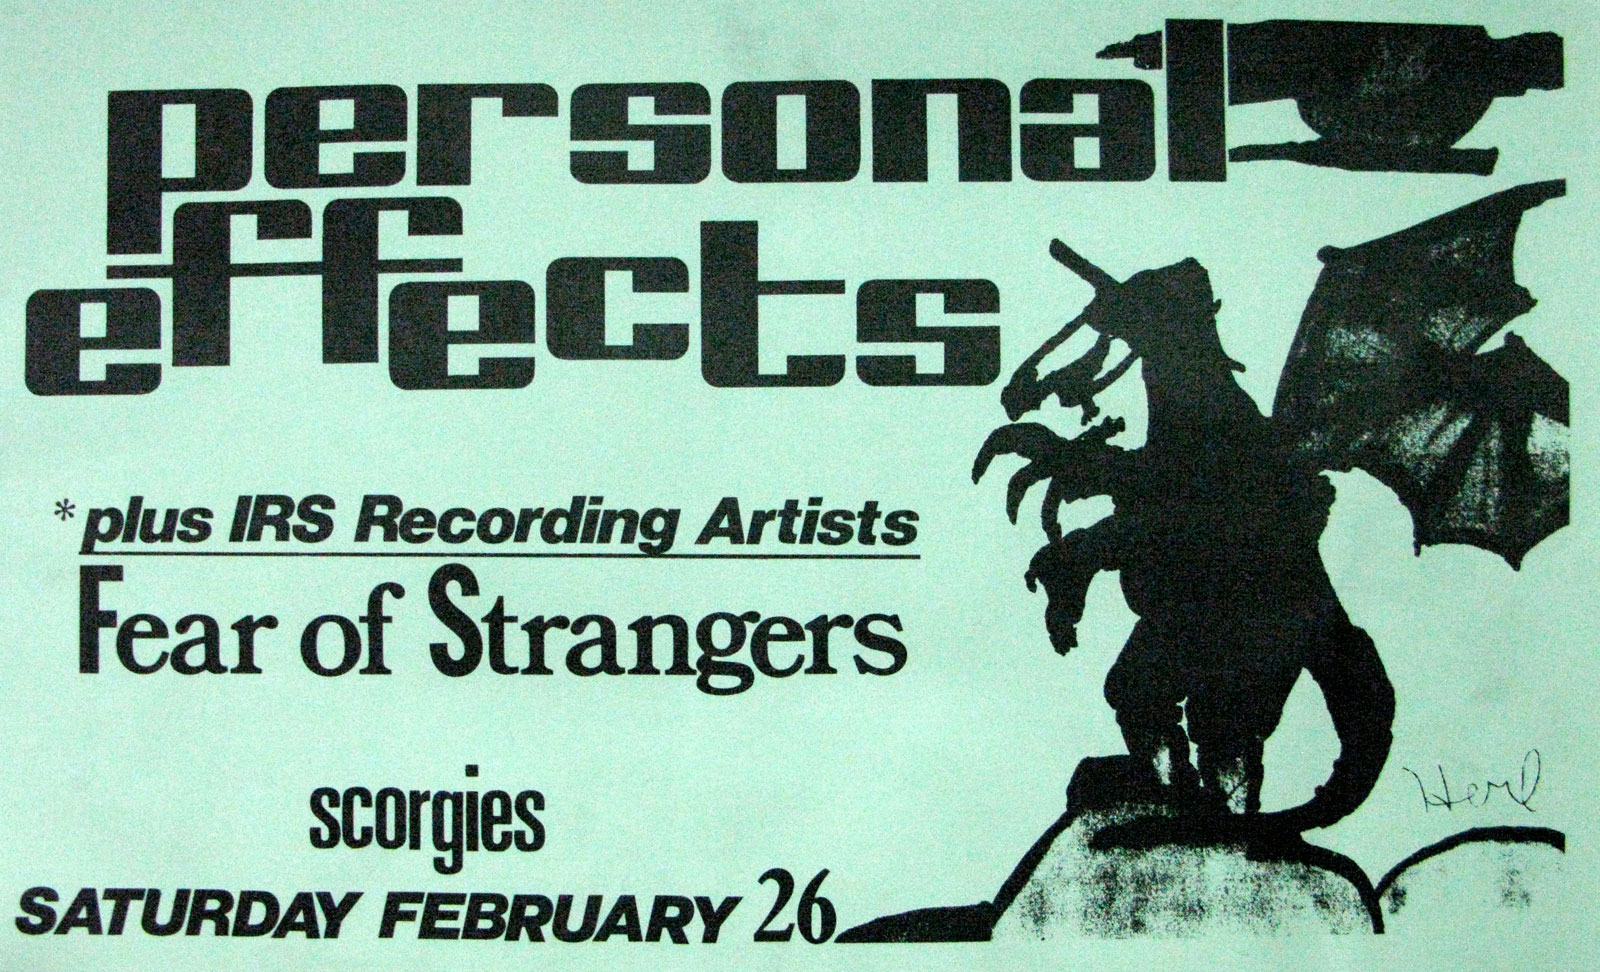 Poster for Personal Effects with Fear of Strangers at Scorgies in Rochester, New York 02.26.1983